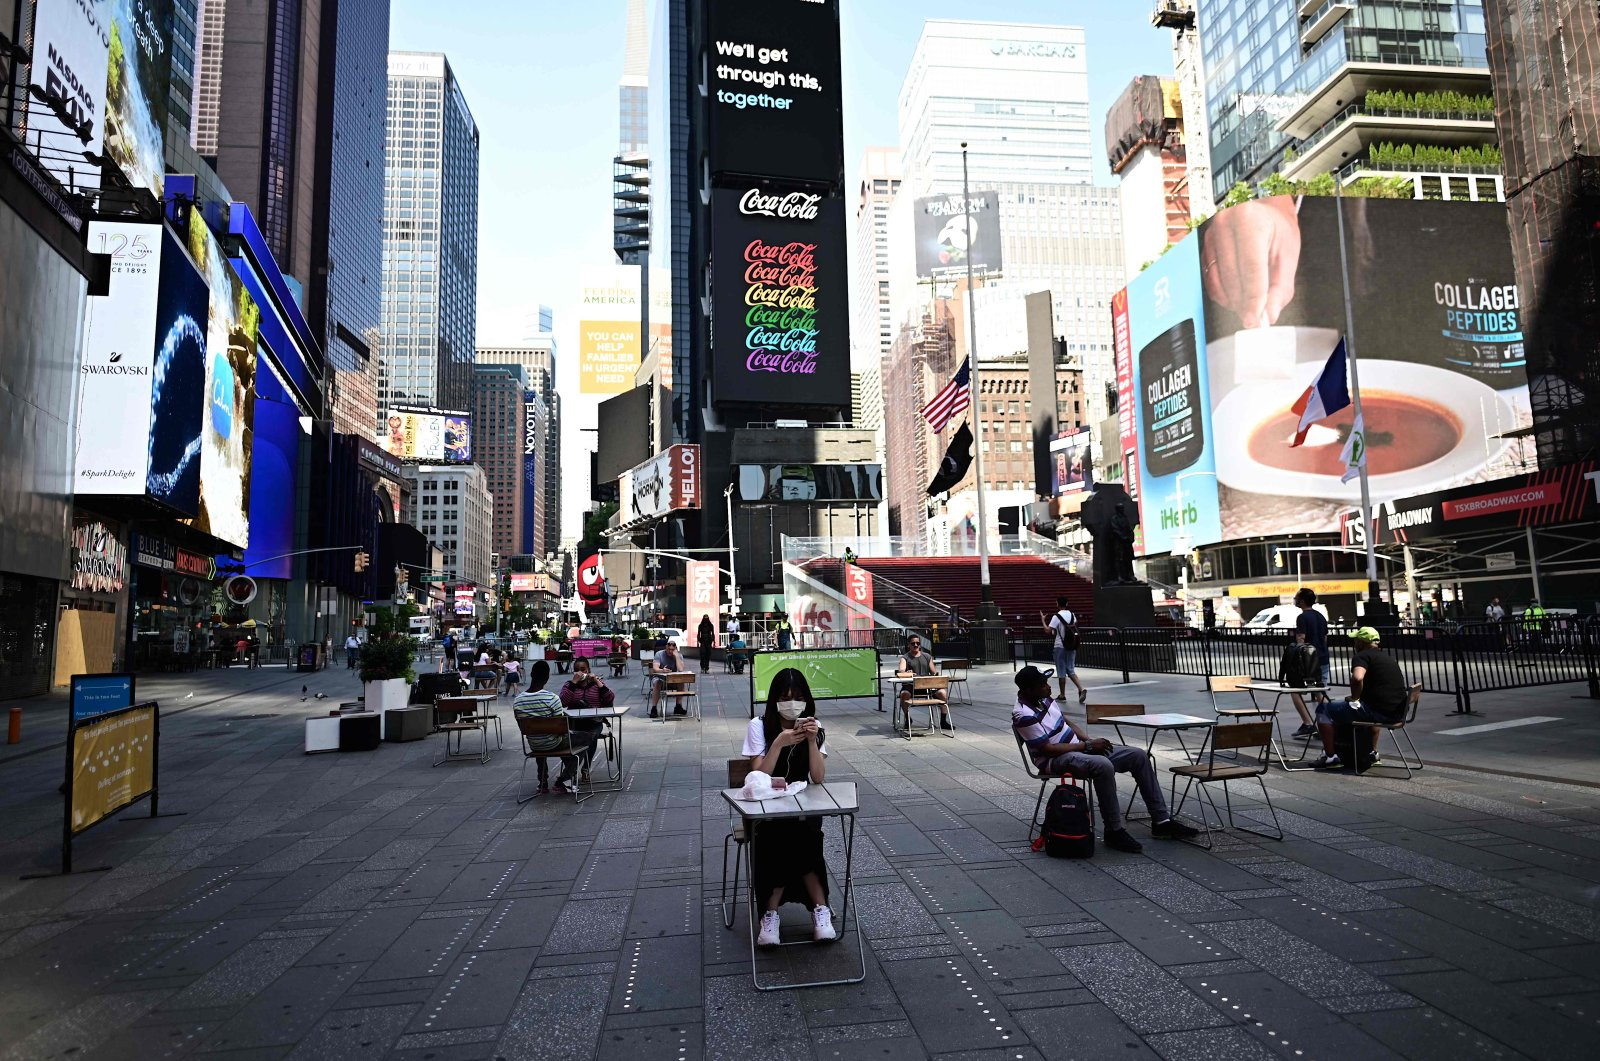 People sit at tables, respecting social distancing, in Times Square as New York City enters phase two of reopening, New York, U.S., June 22, 2020. (AFP Photo)